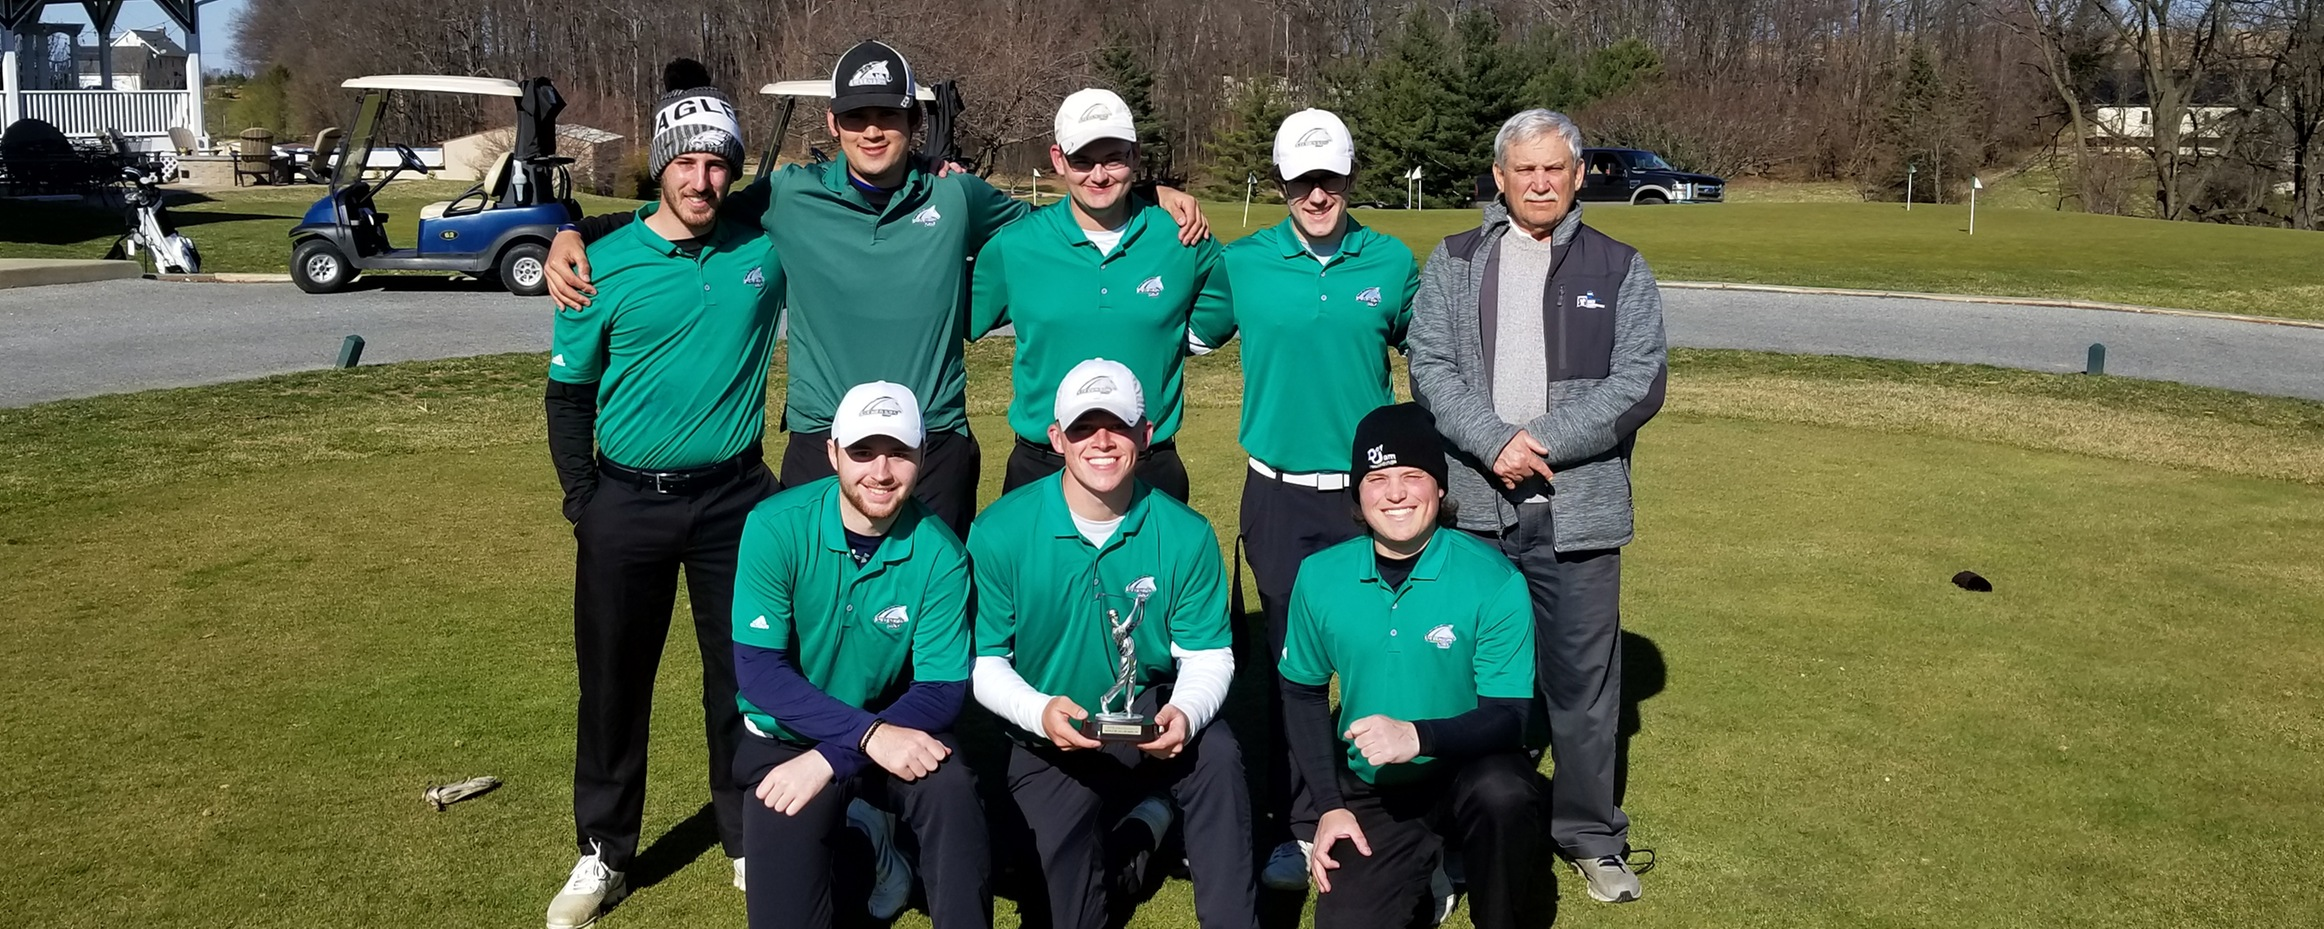 Mustangs Win Stevenson Spring Invite, Maisel, Angle Finish Tied for Second